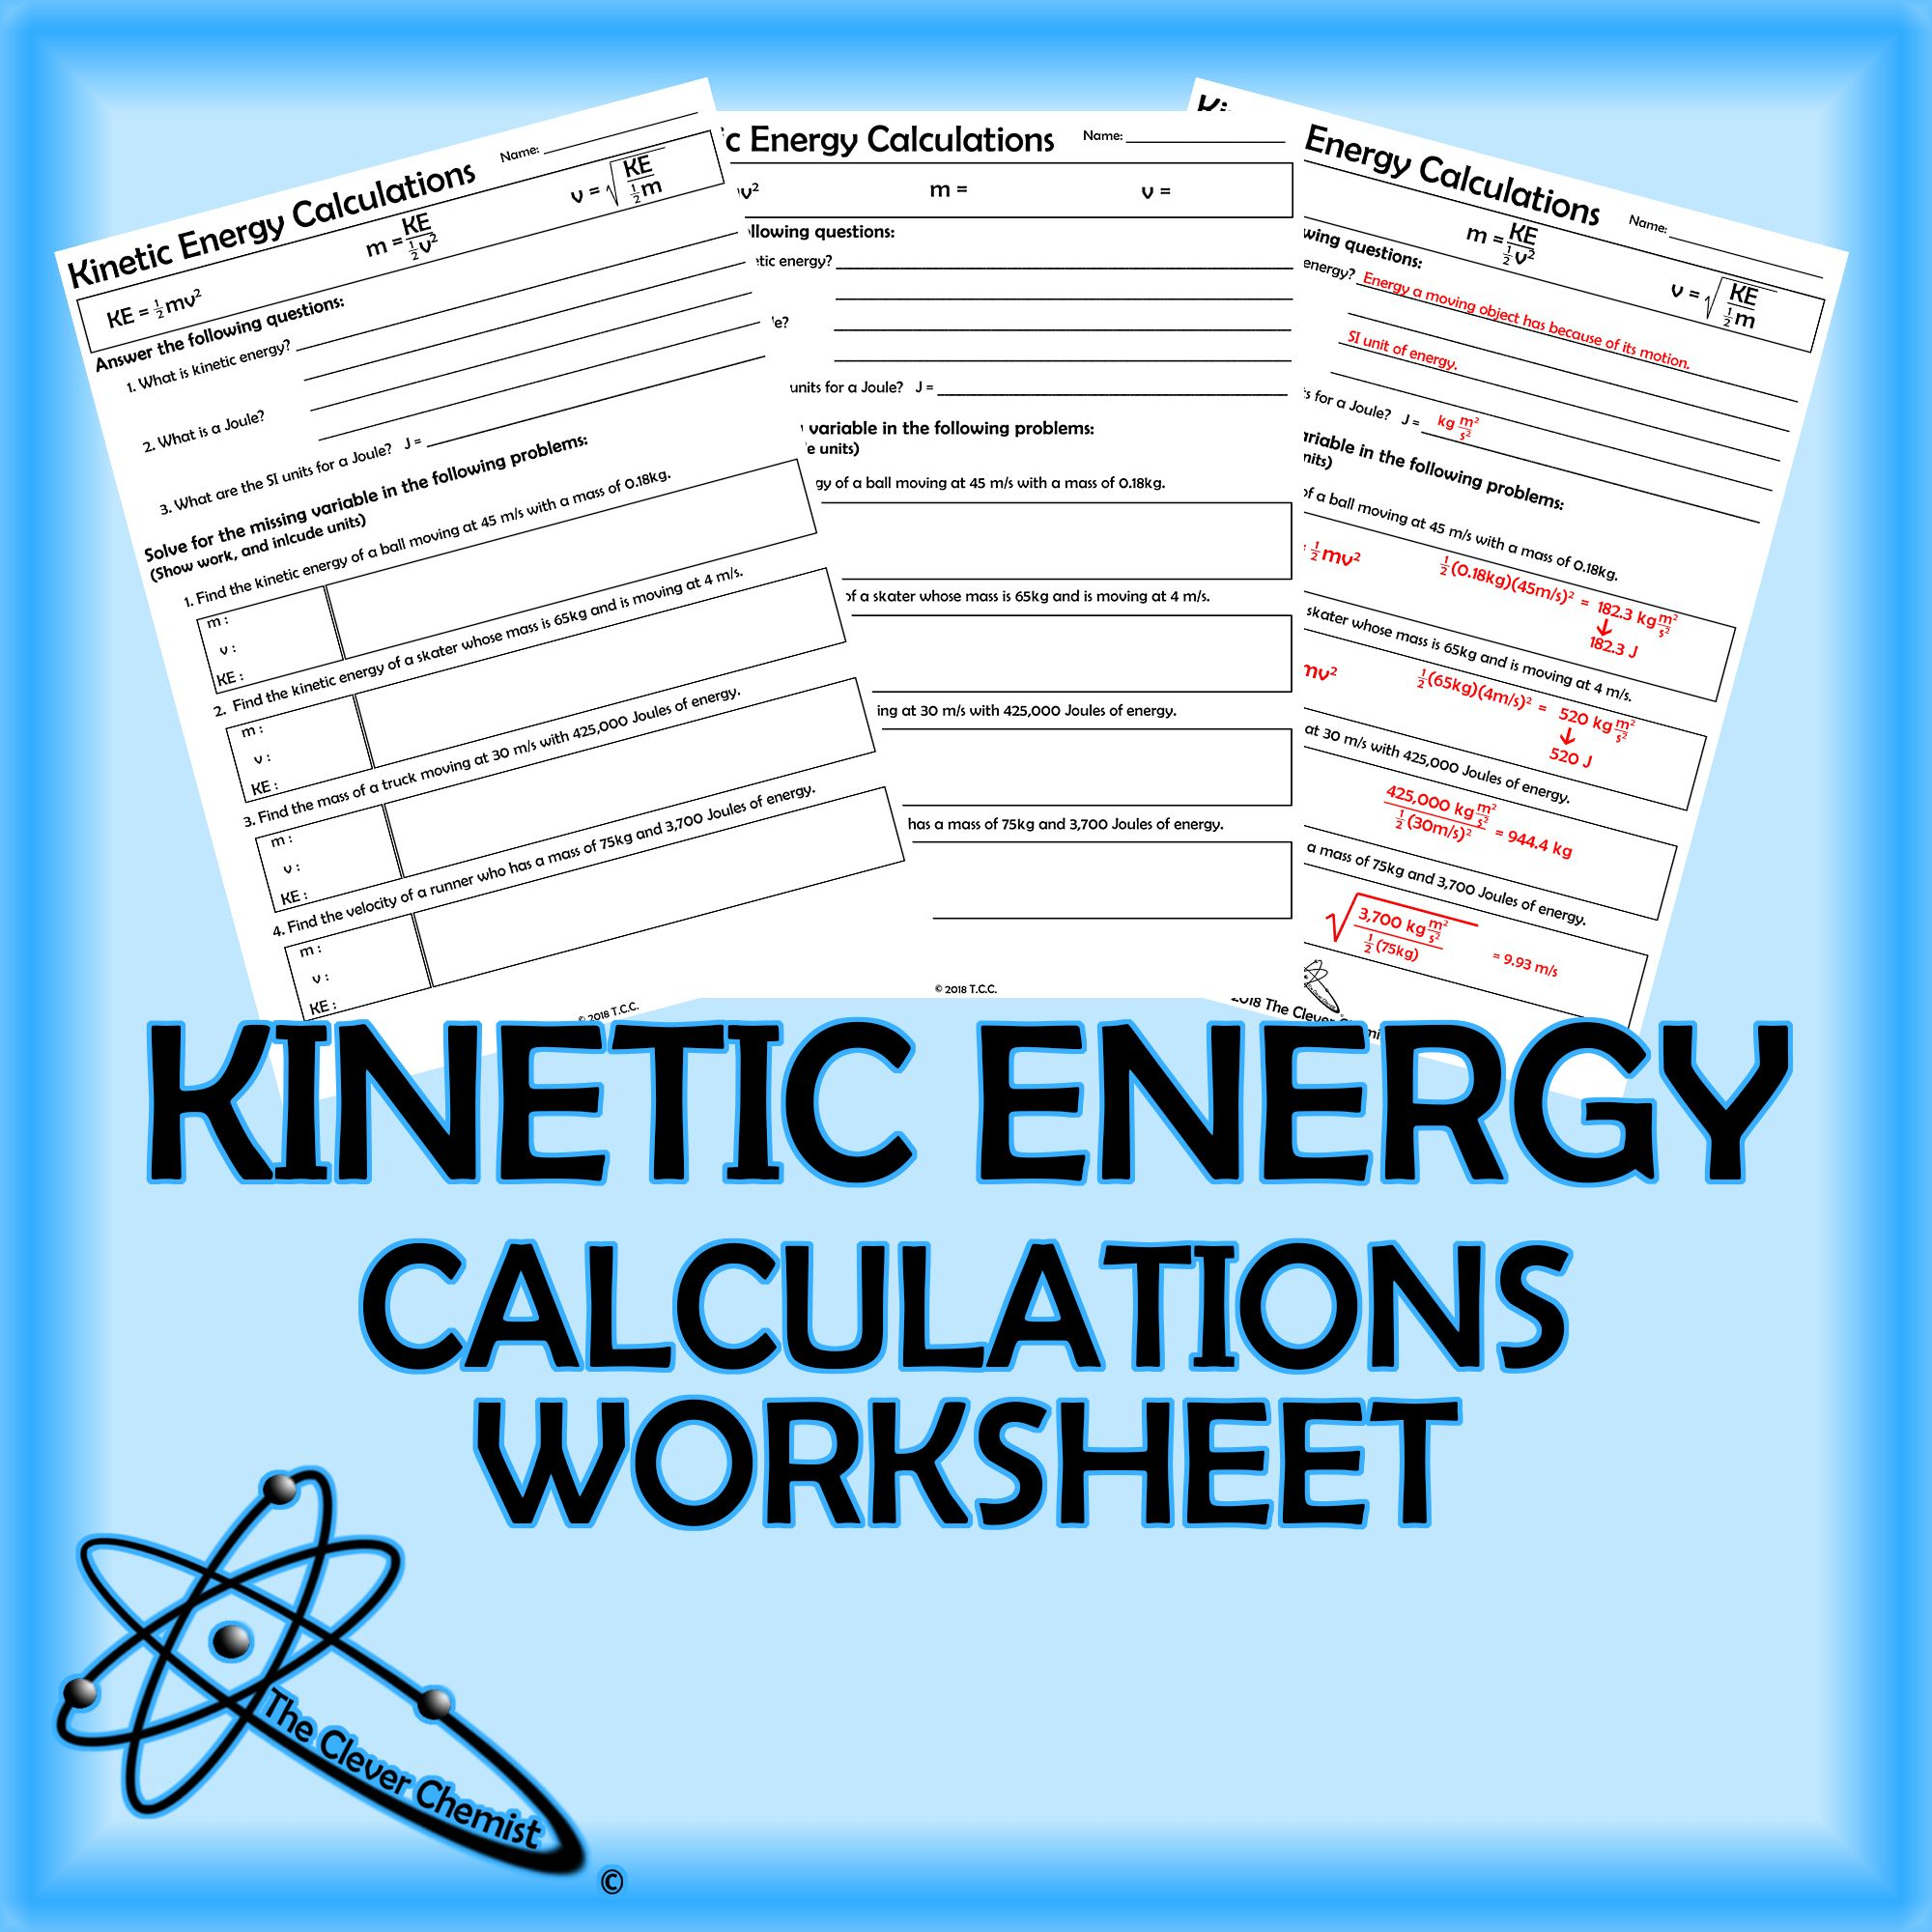 Kinetic Energy Calculations Worksheet